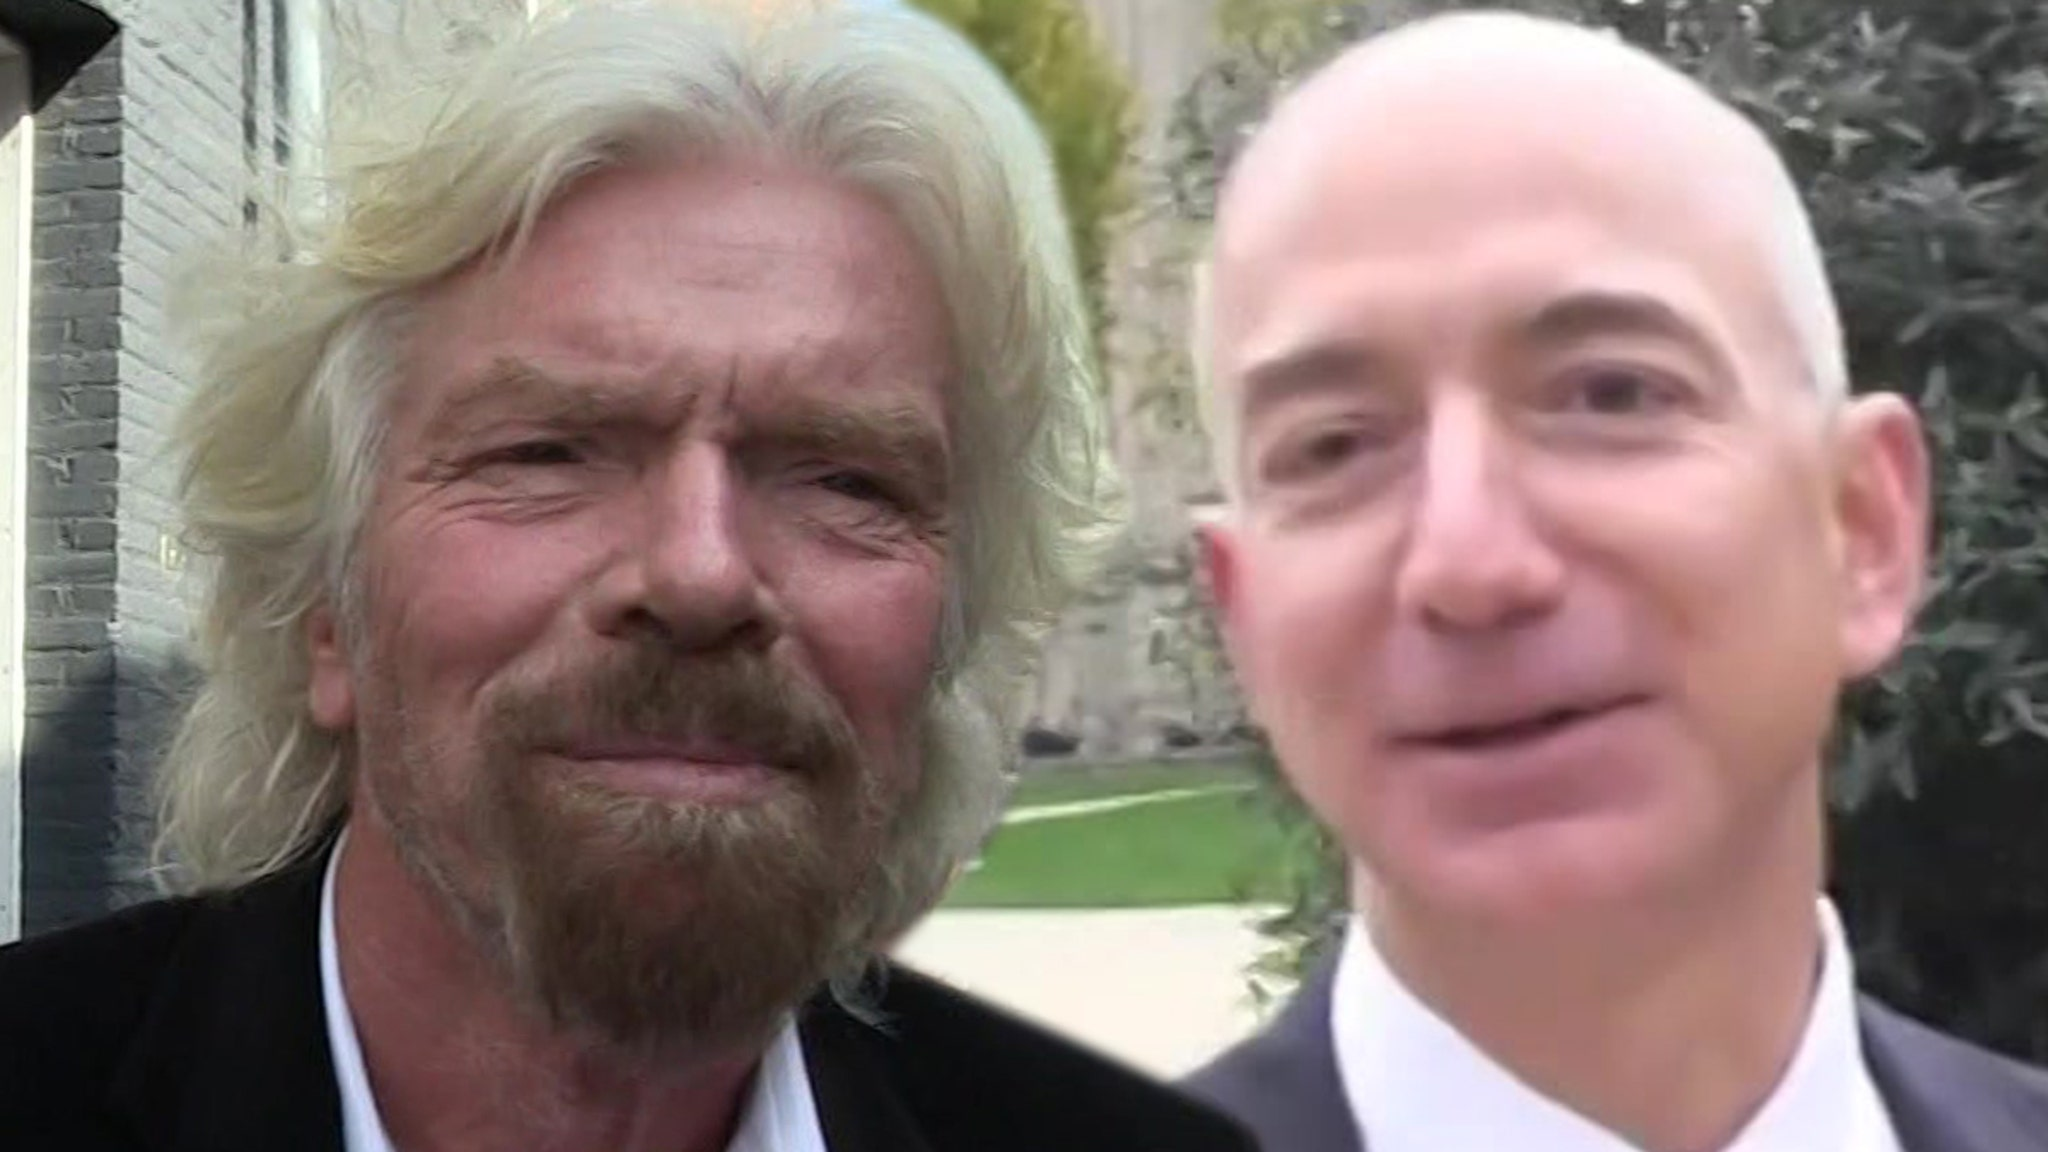 Richard Branson is out to prove he's the billionaire king of space travel, working with his team to beat Amazon's Jeff Bezos in busting out of Earth's atmosphere ... according to a new report.